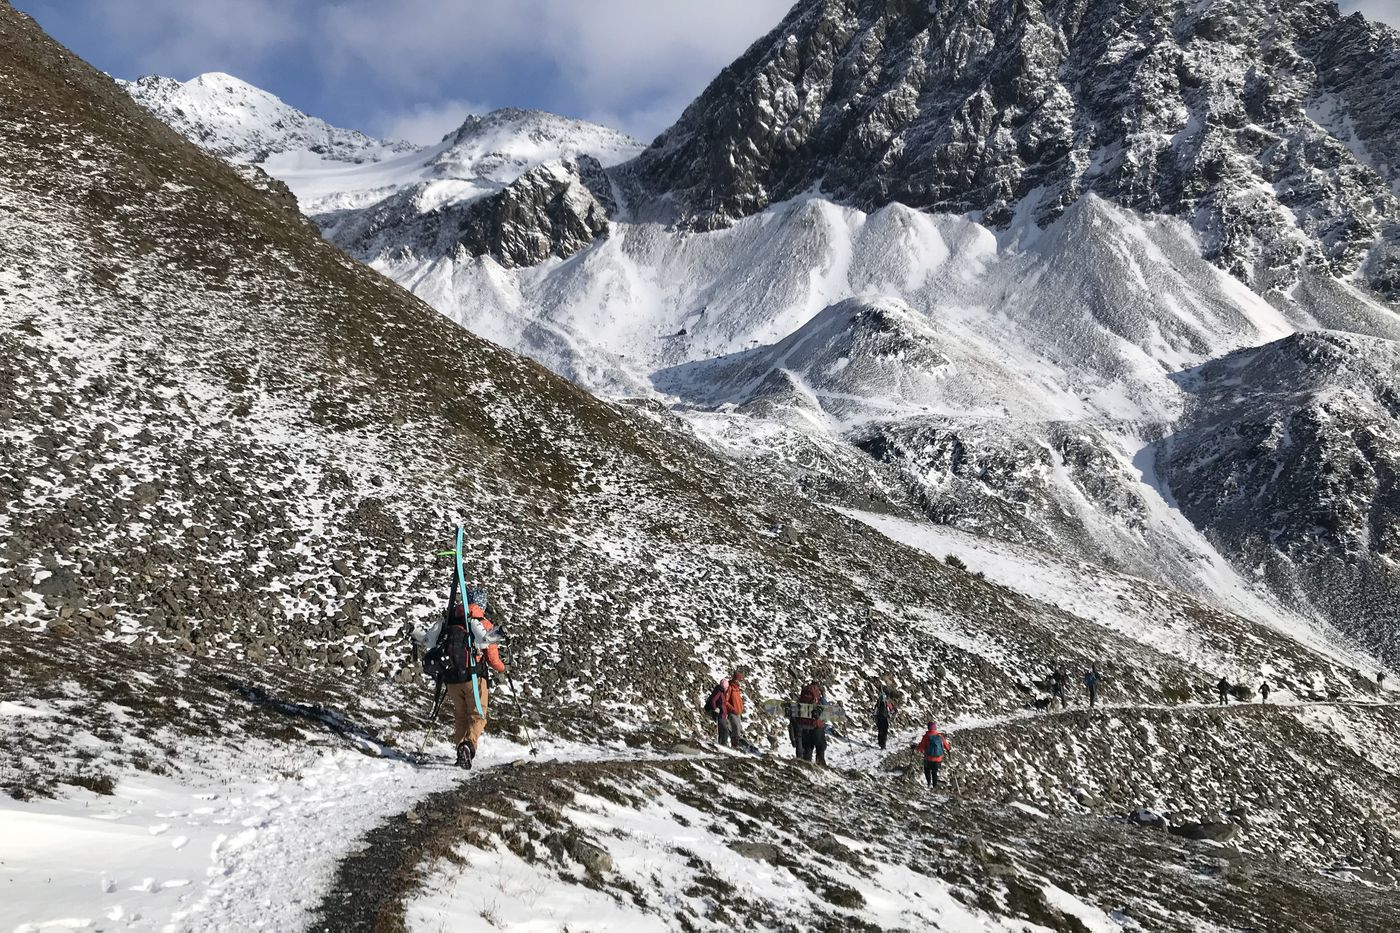 OCTOBER 17. Skiers and hikers descend out of the Crow Pass area. Dozens of skiers hiked to glaciers above Crow Pass to test the new snow. Some skiers reported just 3 inches of new snow on top of the old snow and ice of the glaciers. (Anne Raup / ADN)